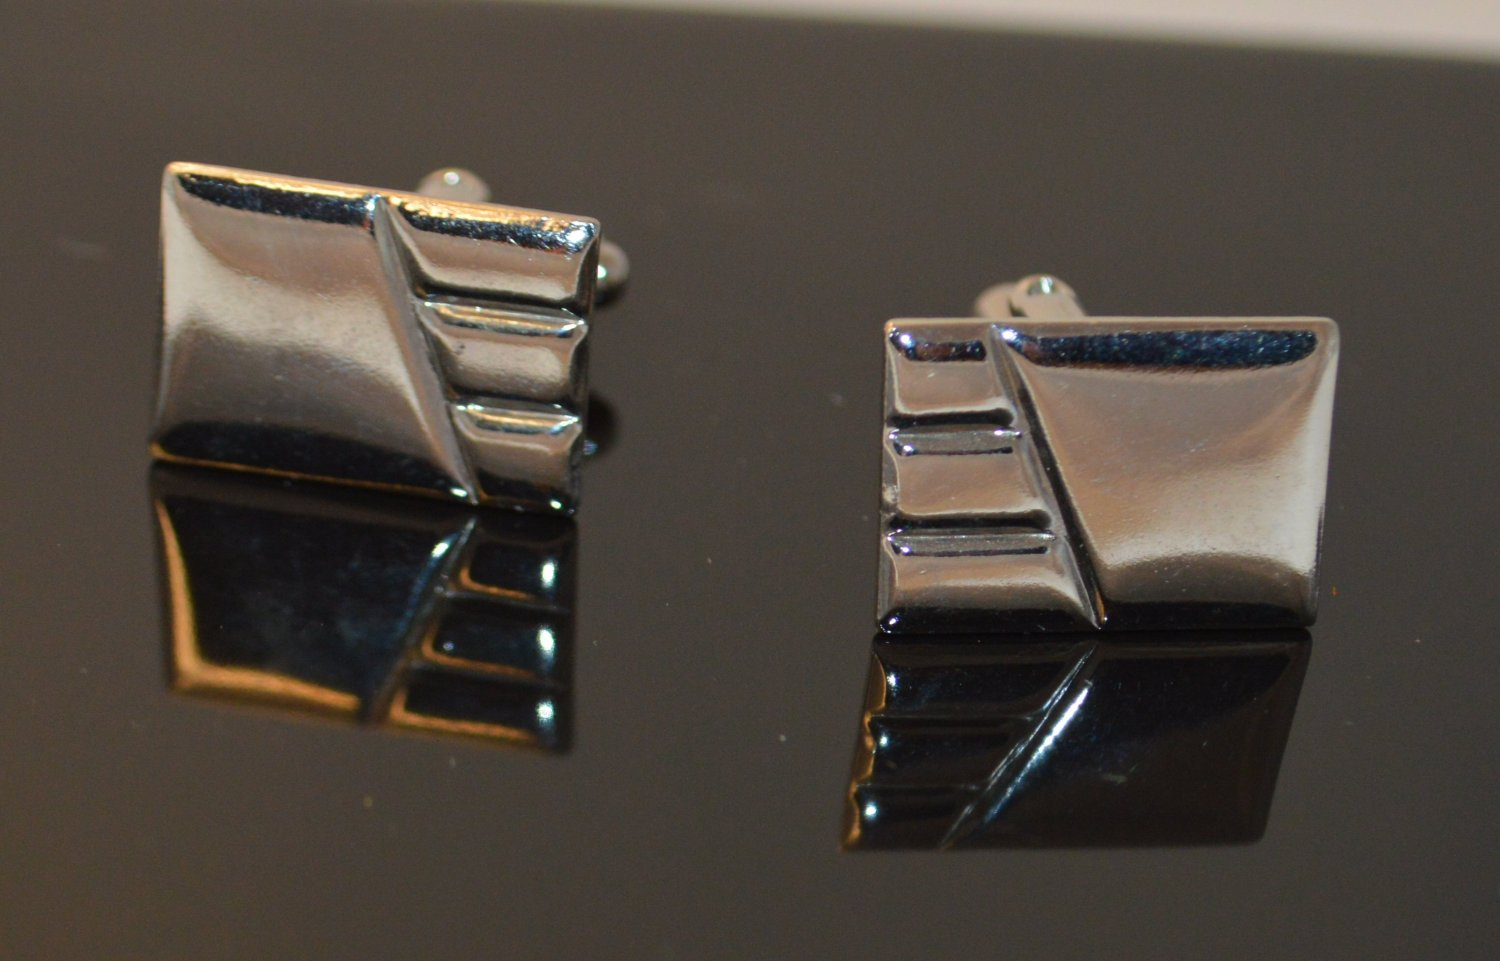 Silver toned metal cuff links with 3 sized Ridge Stamped in the metal